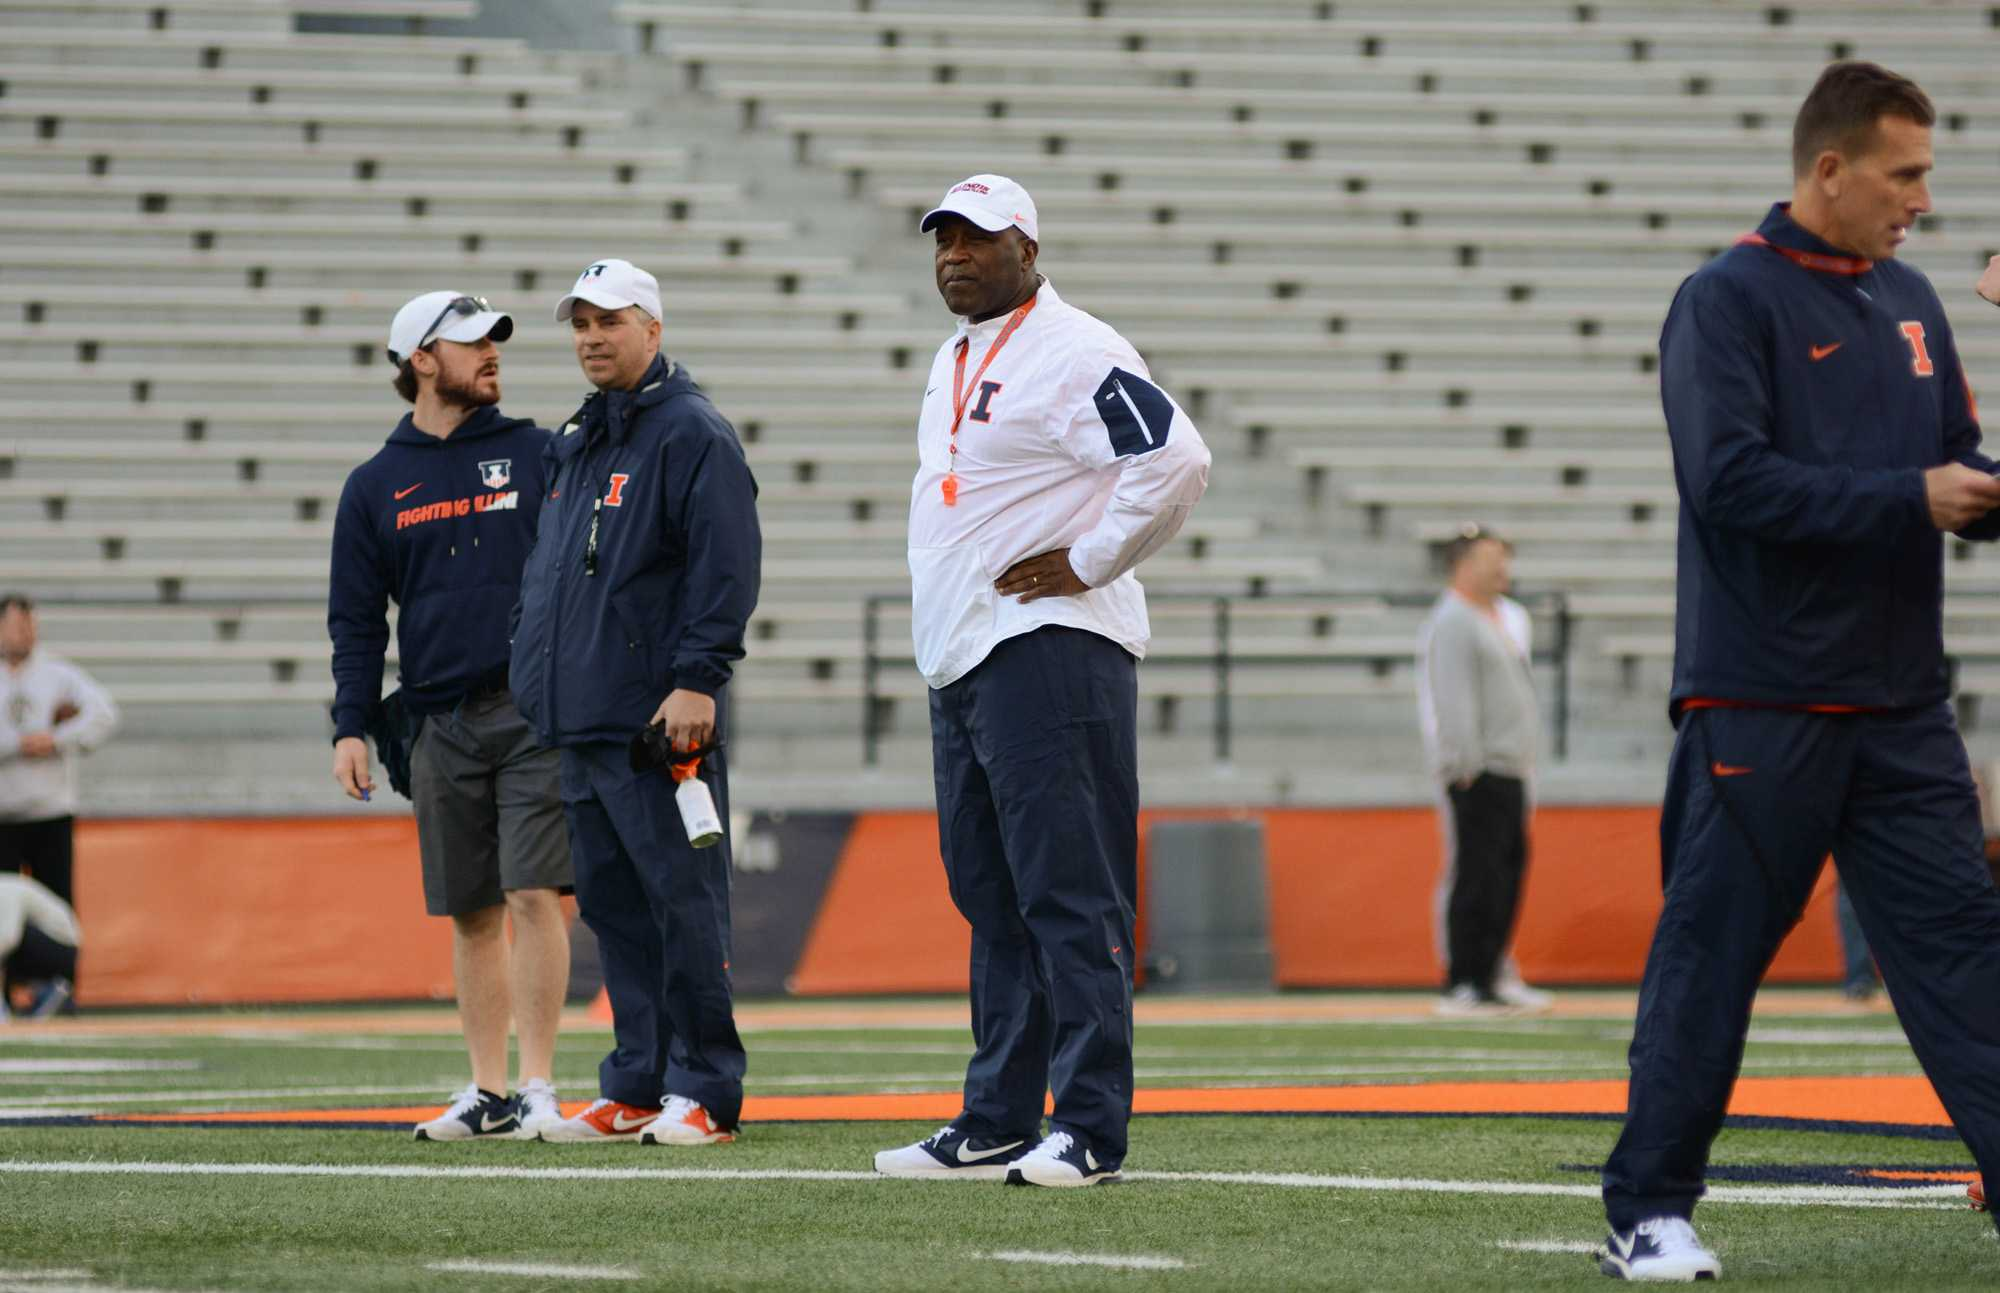 Illinois' football headcoach Lovie Smith observes Illini players running drills during the first spring practice Friday.